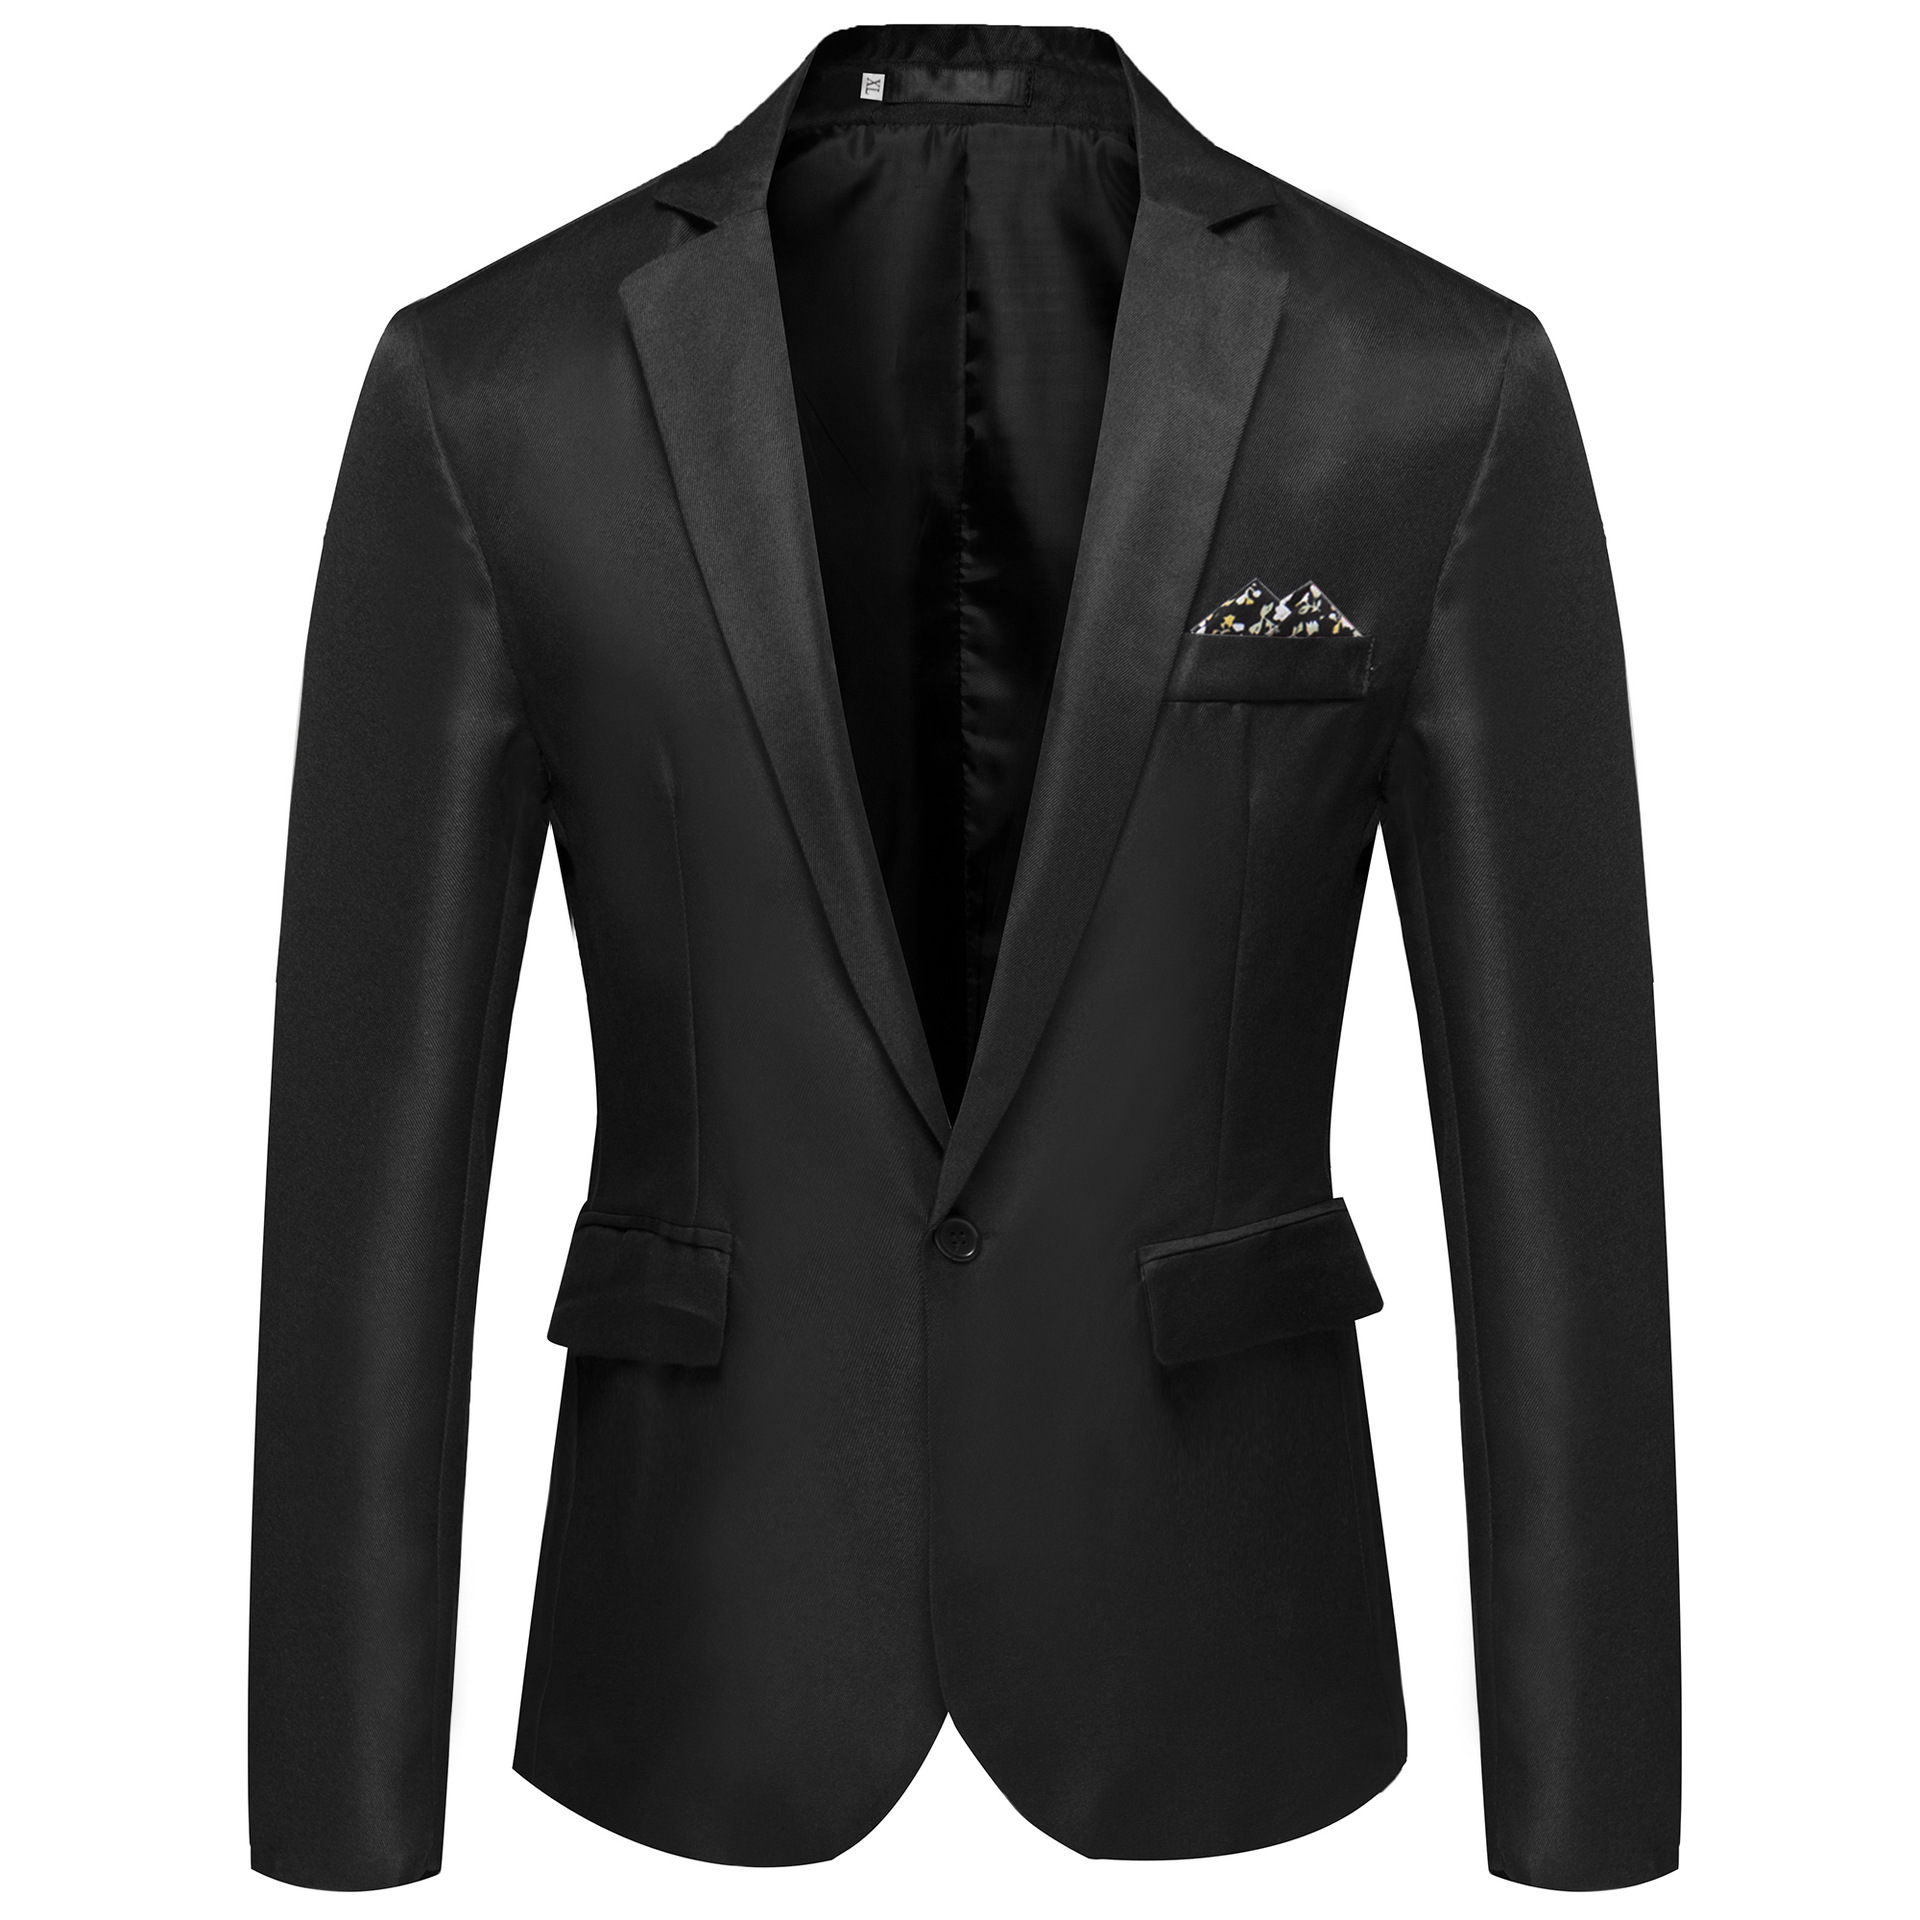 19 Autumn New Style Men Casual Small Suit Fashion Large Size Single Row Of A Buckle Suit Workwear Coat Men's